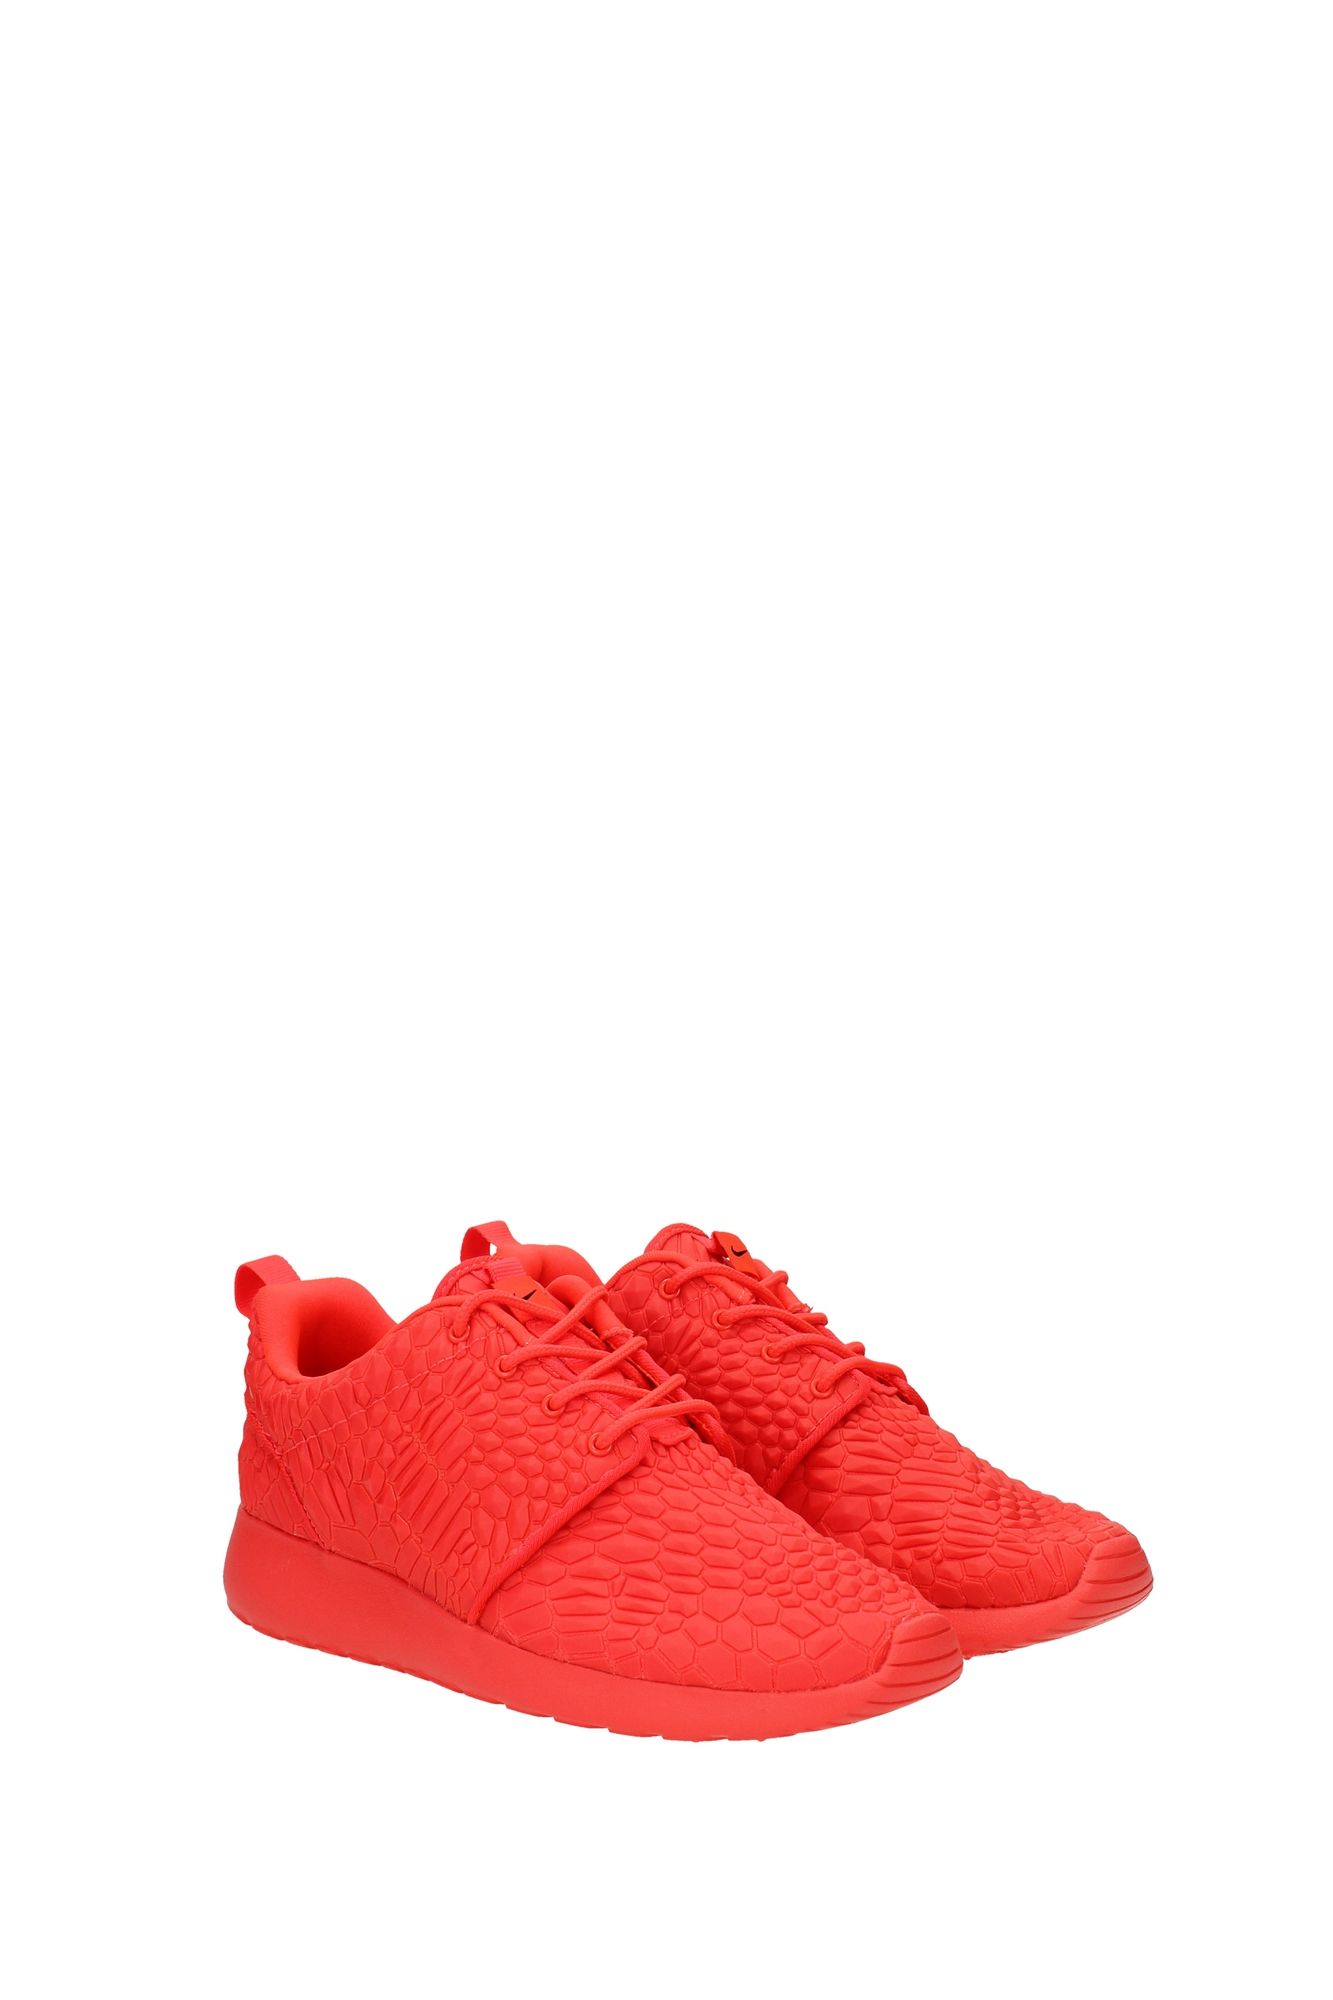 Nike roshe one dmb red womens -  Picture 3 Of 6